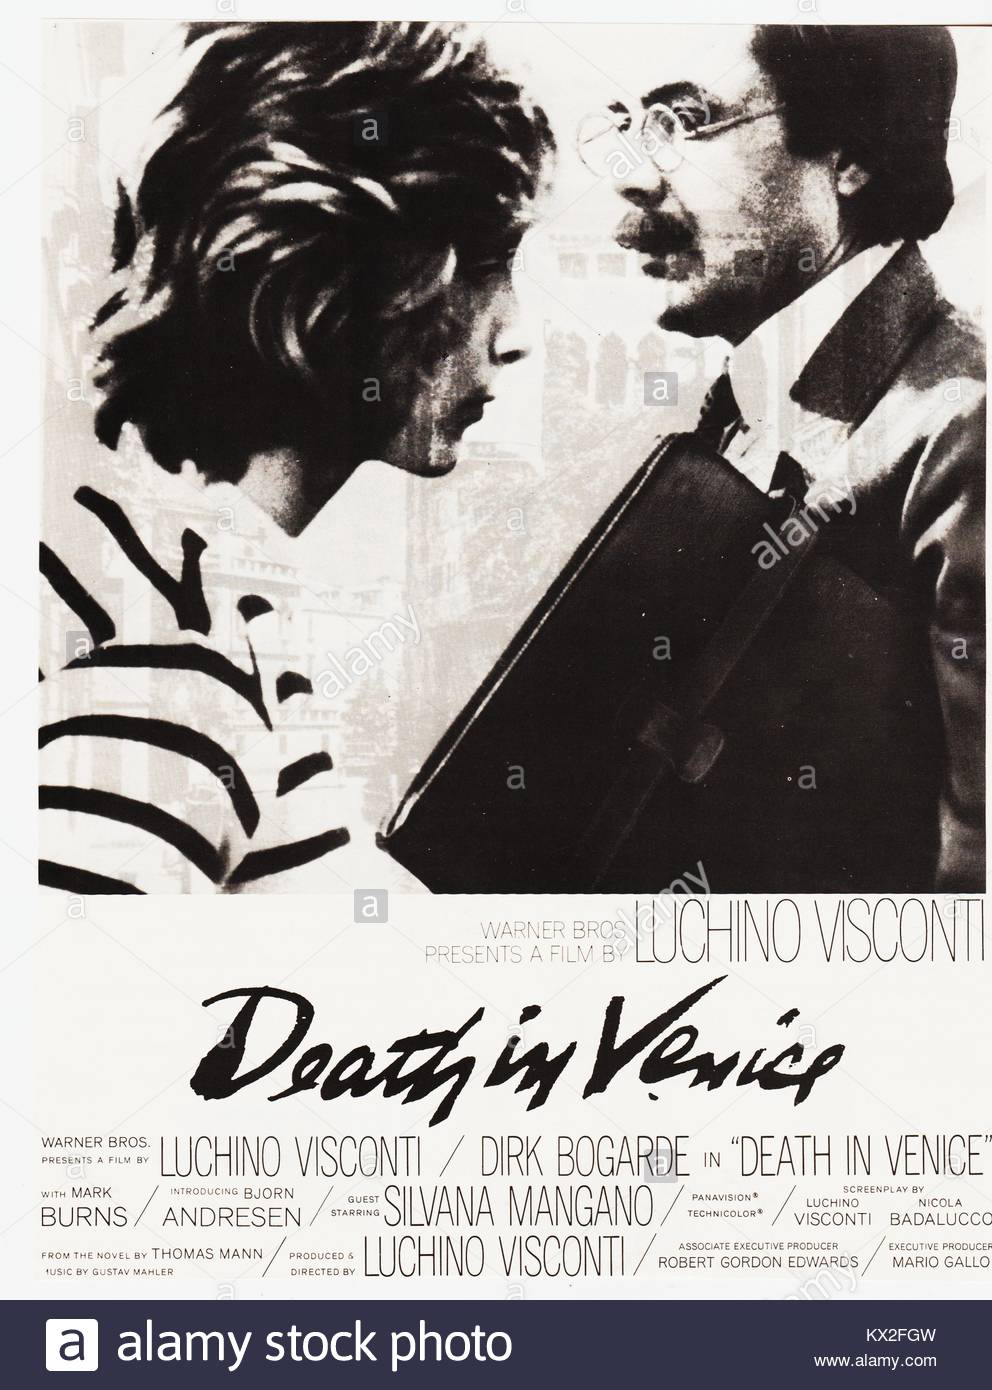 an analysis of death in venice a novella by thomas mann However, as the novella progresses, aschenbach learns that even stone—and  upright lives—crumble with time and age  venice itself functions as a symbol of  beautiful decay in death in venice  death in venice mann paul thomas.